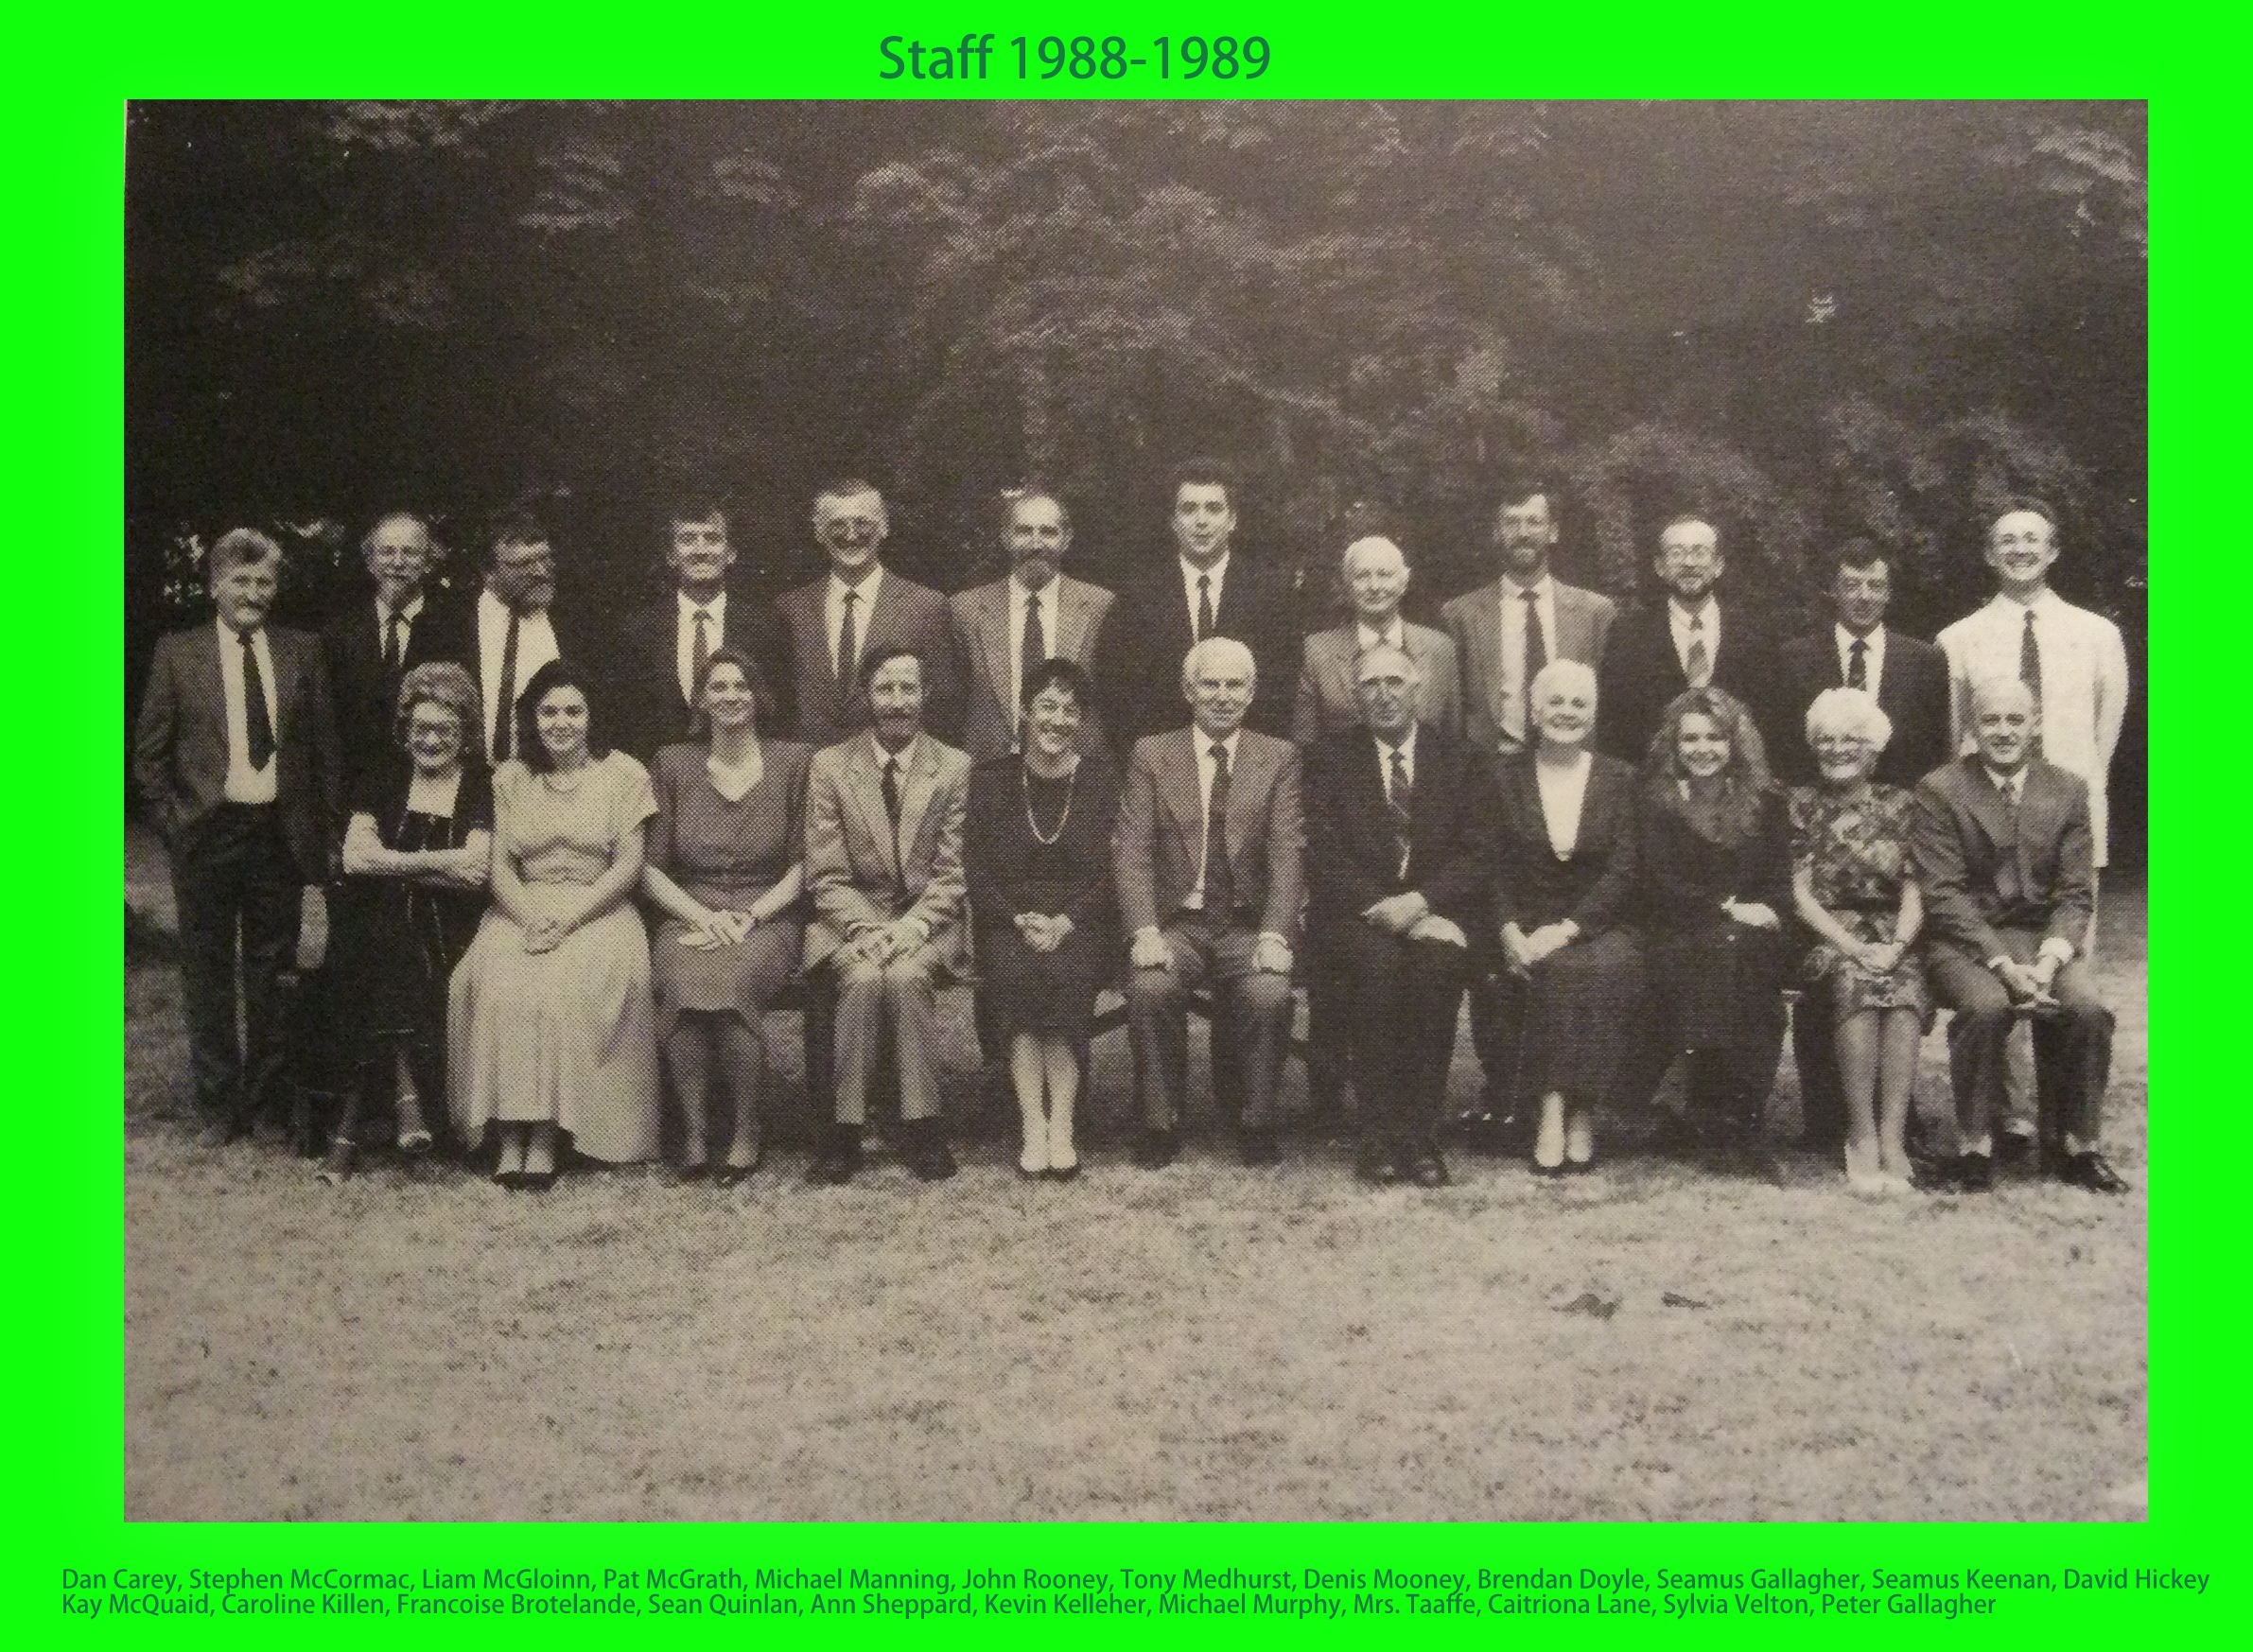 Staff 1988-1989 with names